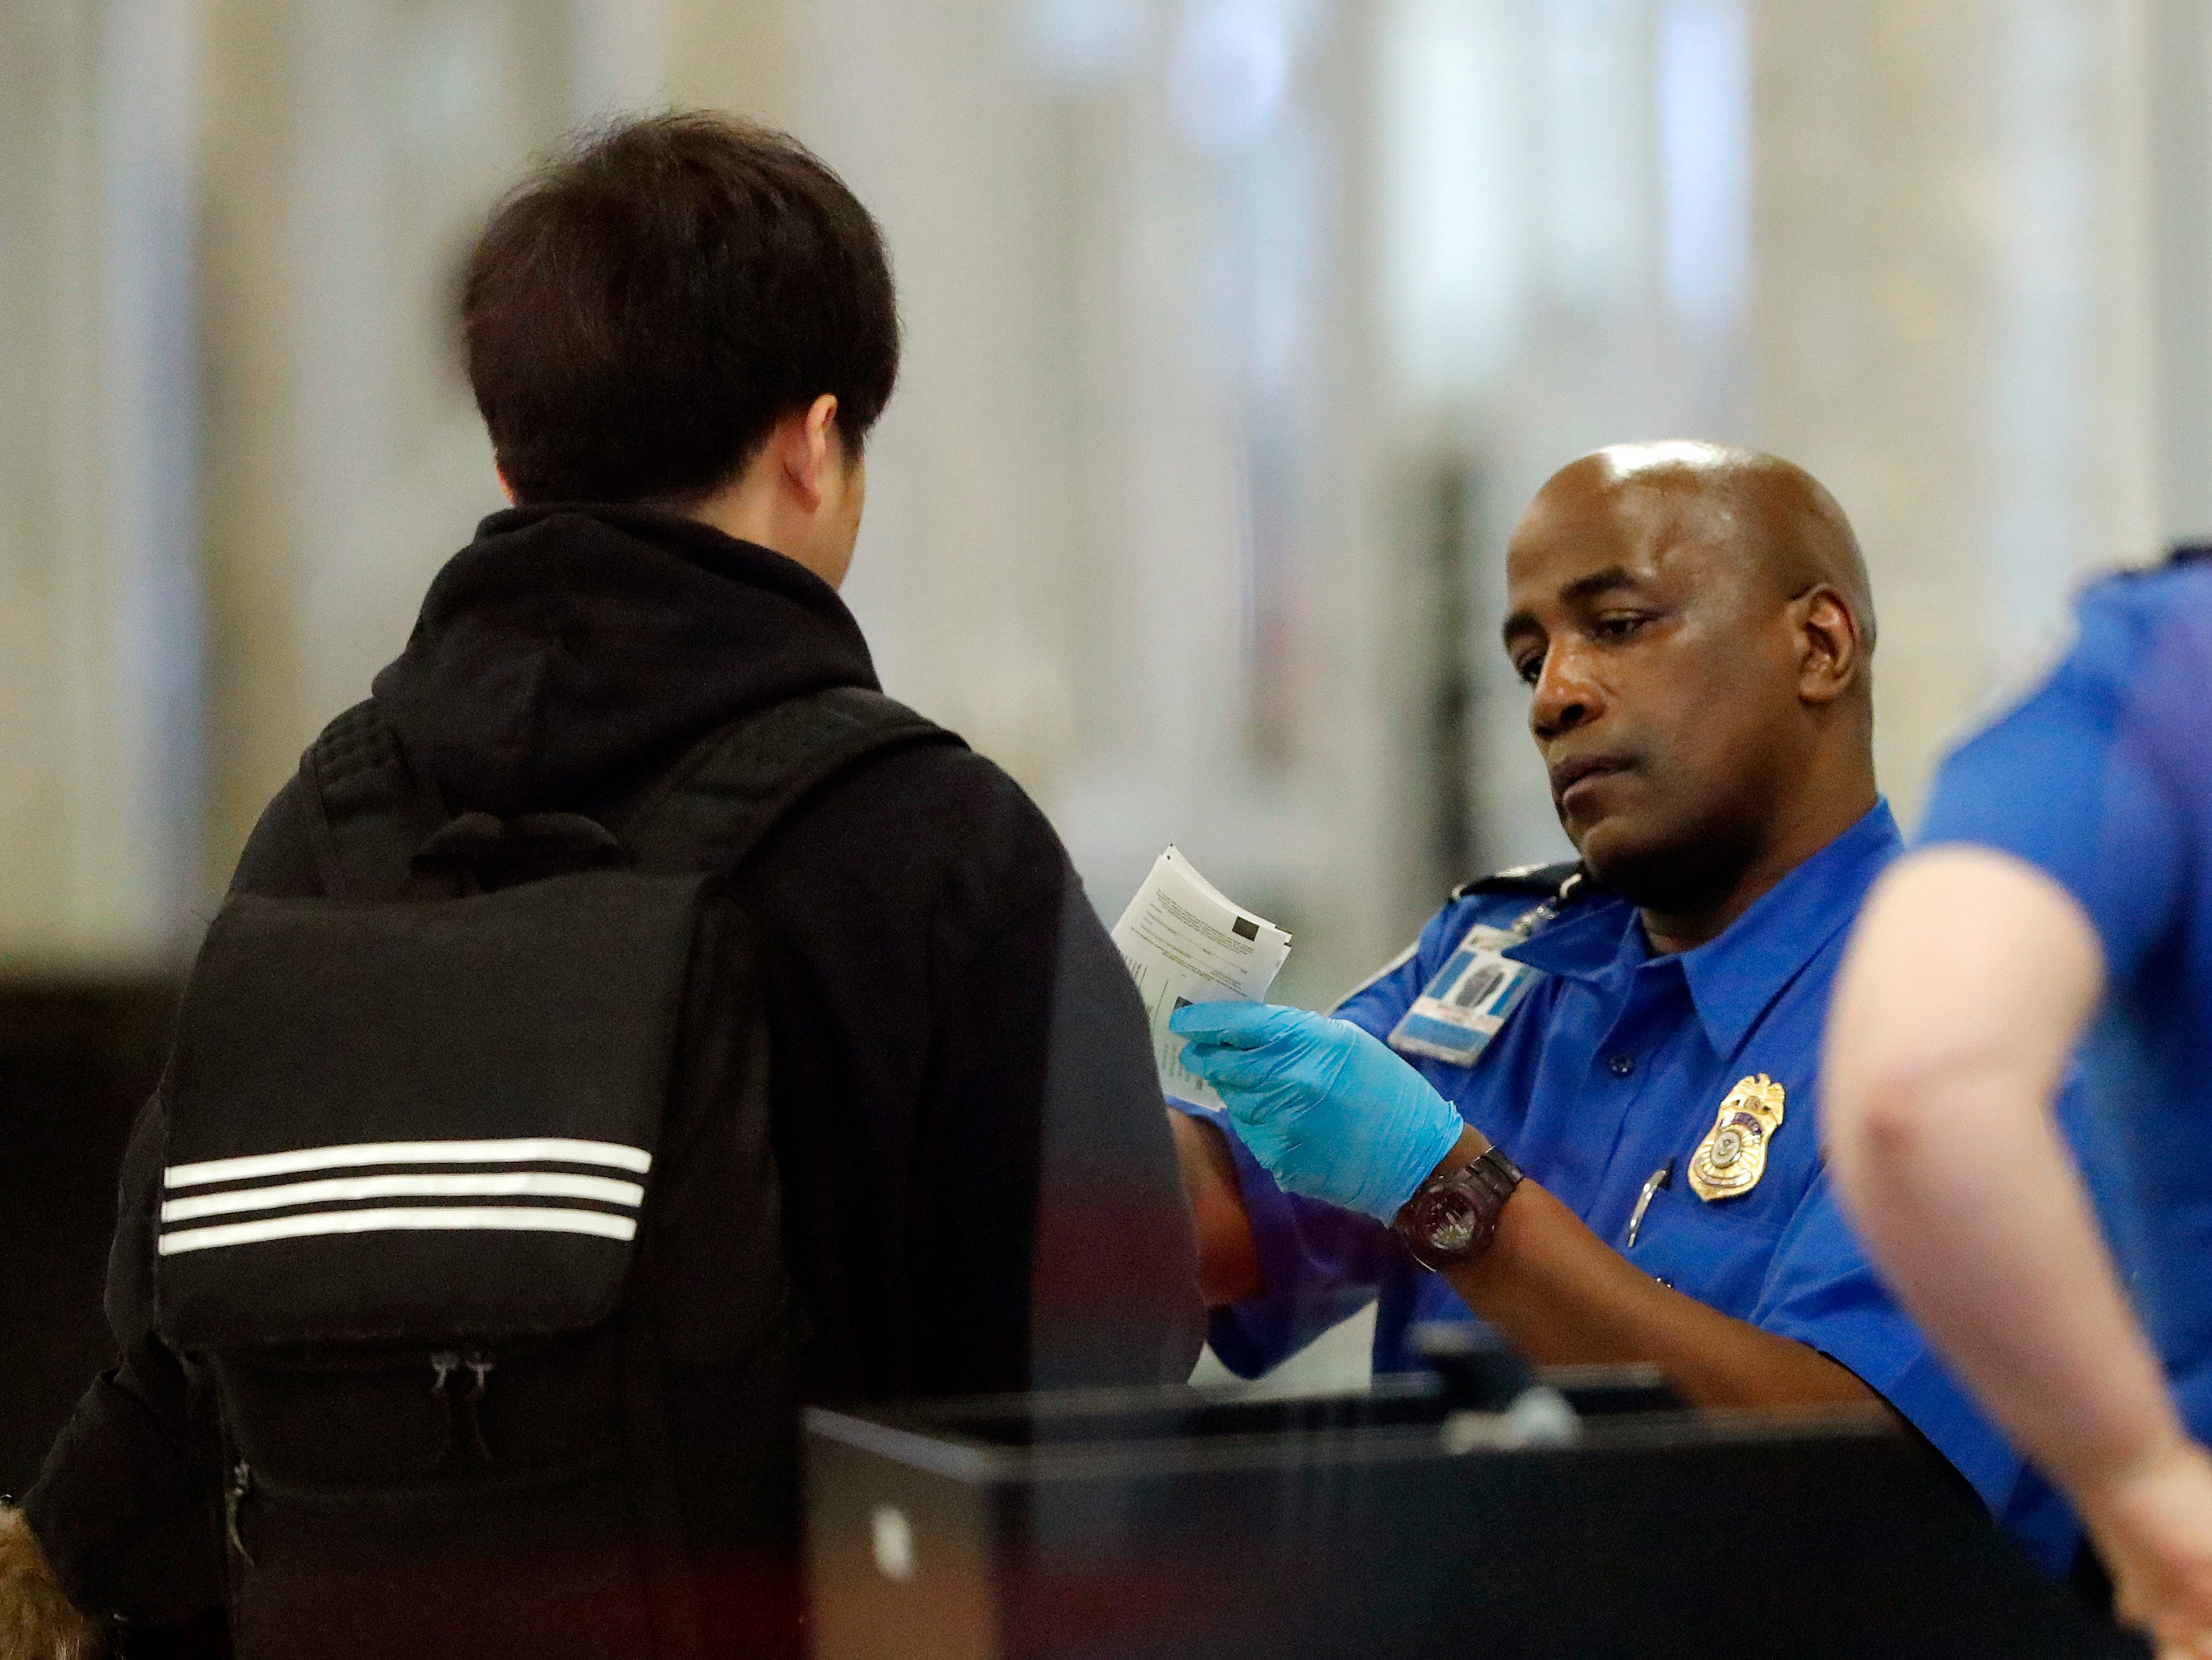 If you're flying out of Atlanta, expect longer checkpoint waits